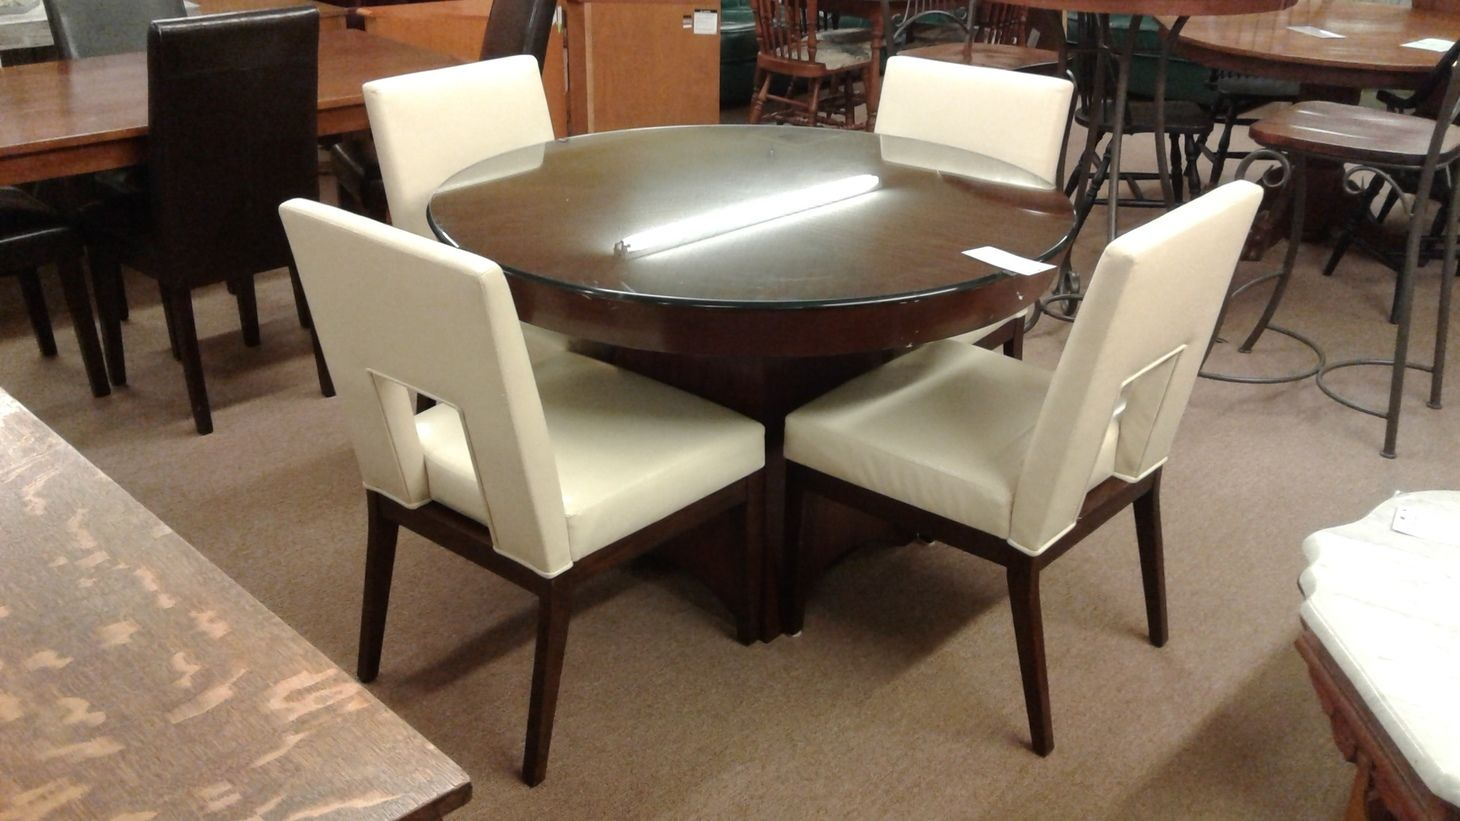 PIER ONE DINING TABLE4 CHAIRS  Delmarva Furniture